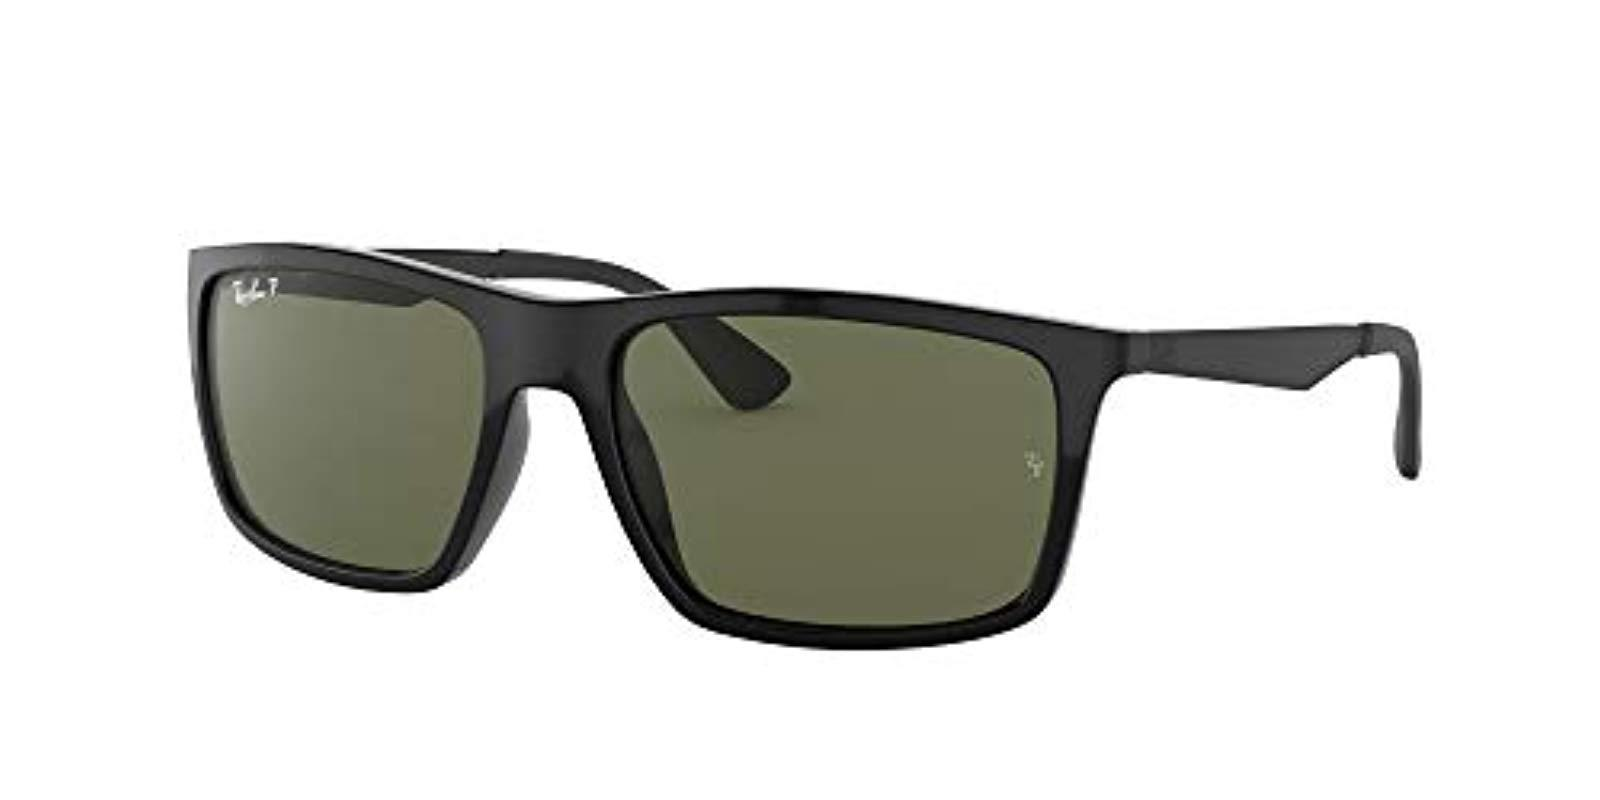 Ray-Ban Rb4228 Sunglasses, Negro, 58 in Black for Men